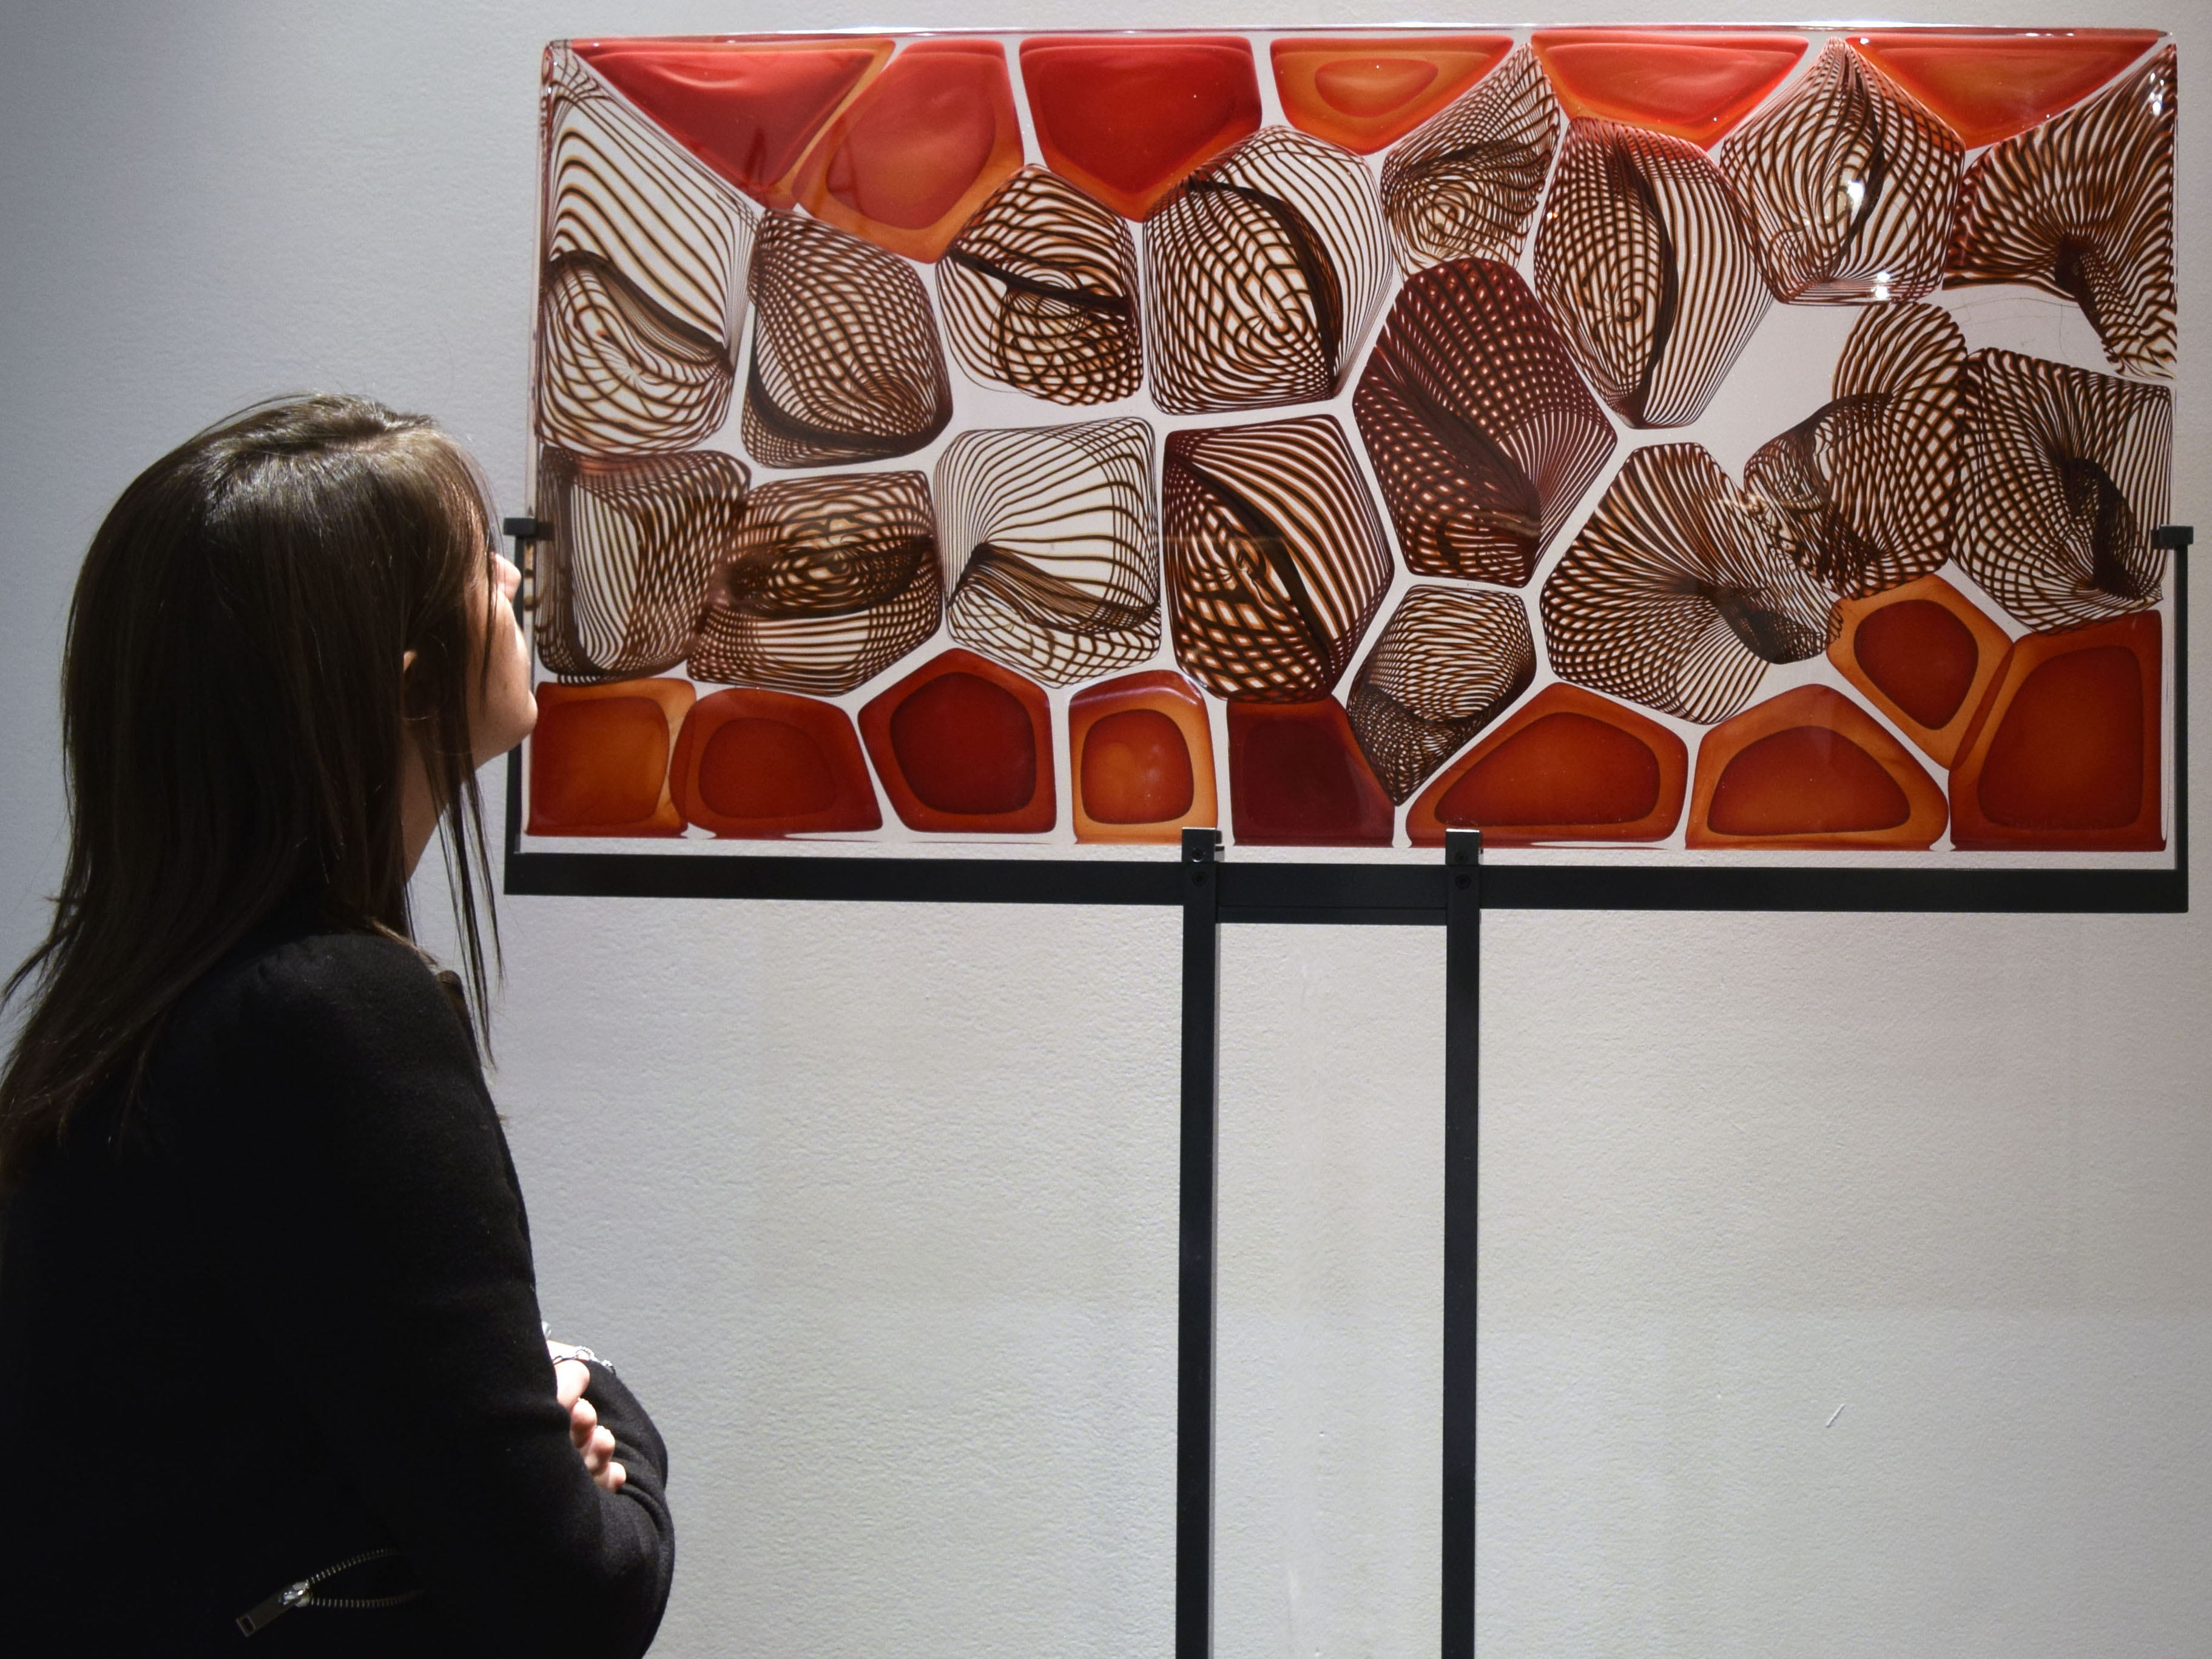 Admiring The Coral Reef Fused Glass By Lino Tagliapietra.